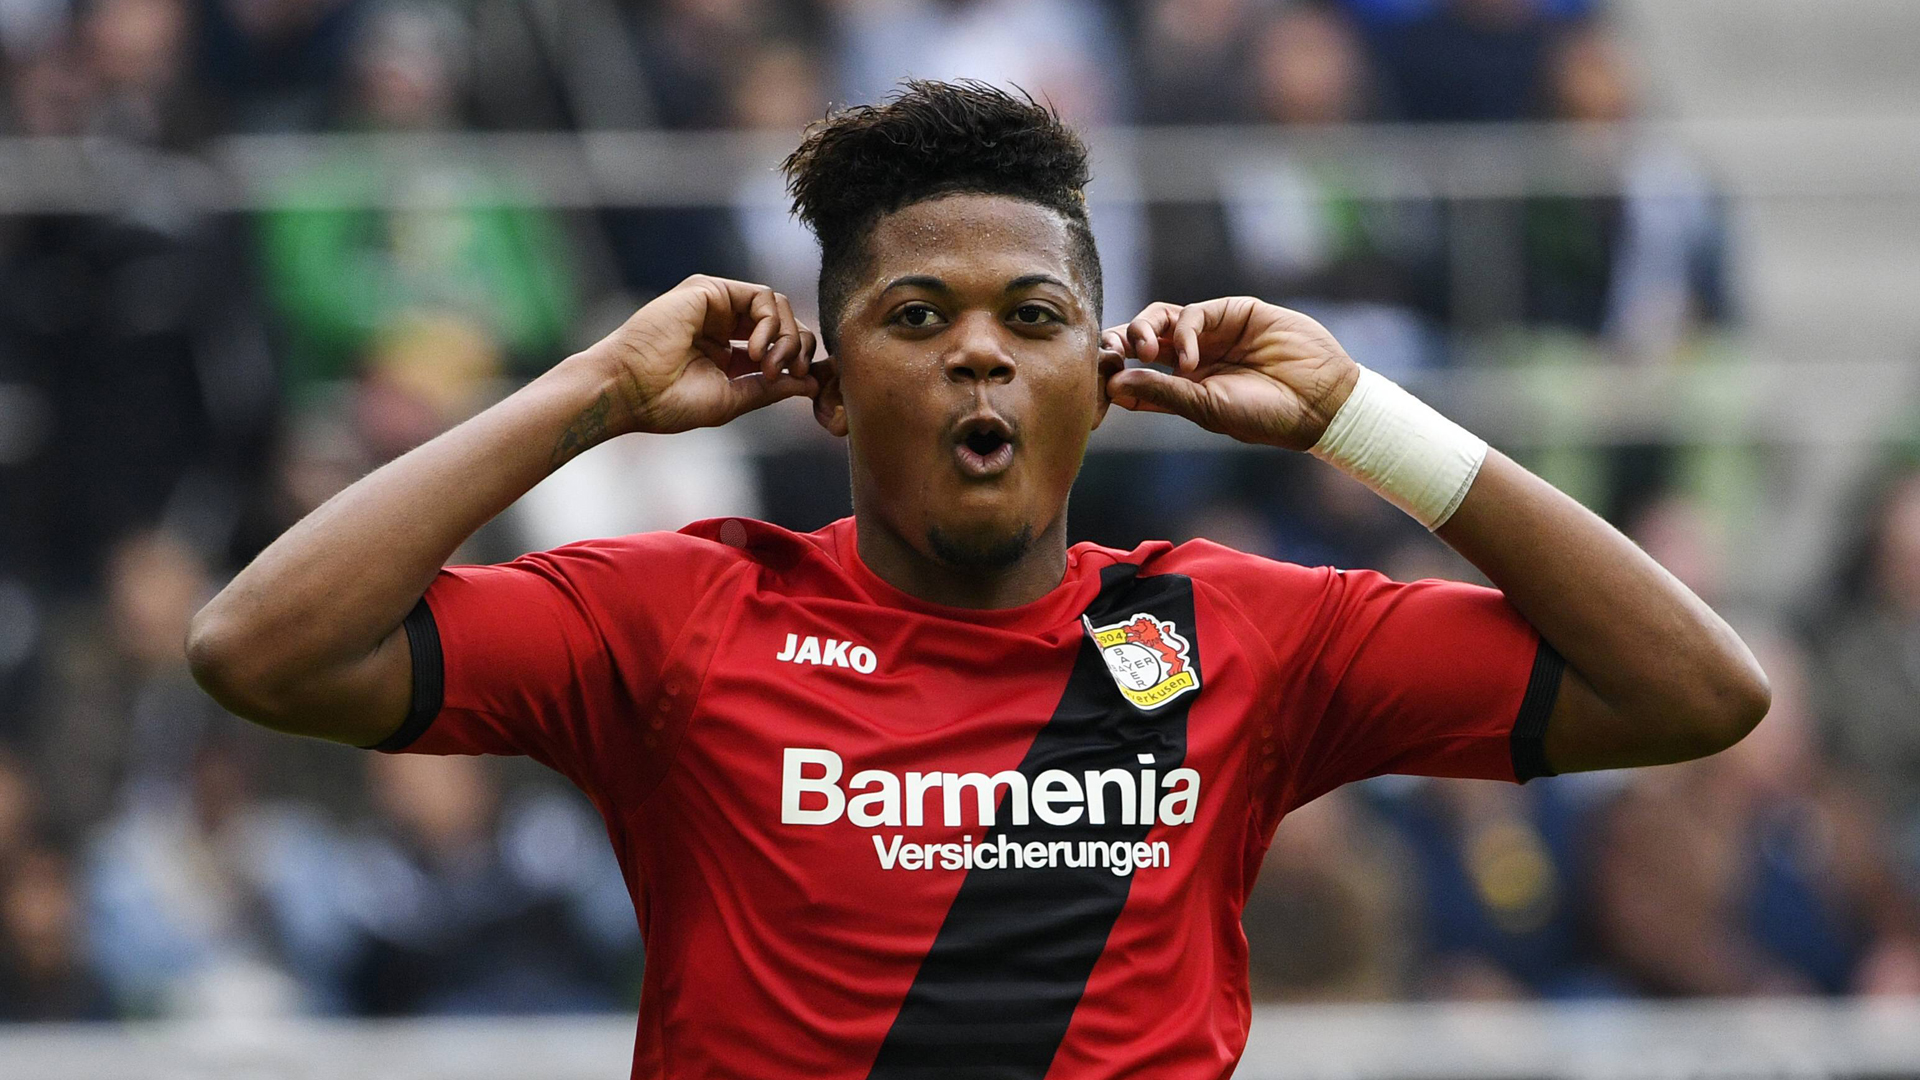 Leon Bailey celebrates after scoring a goal (Getty Images)